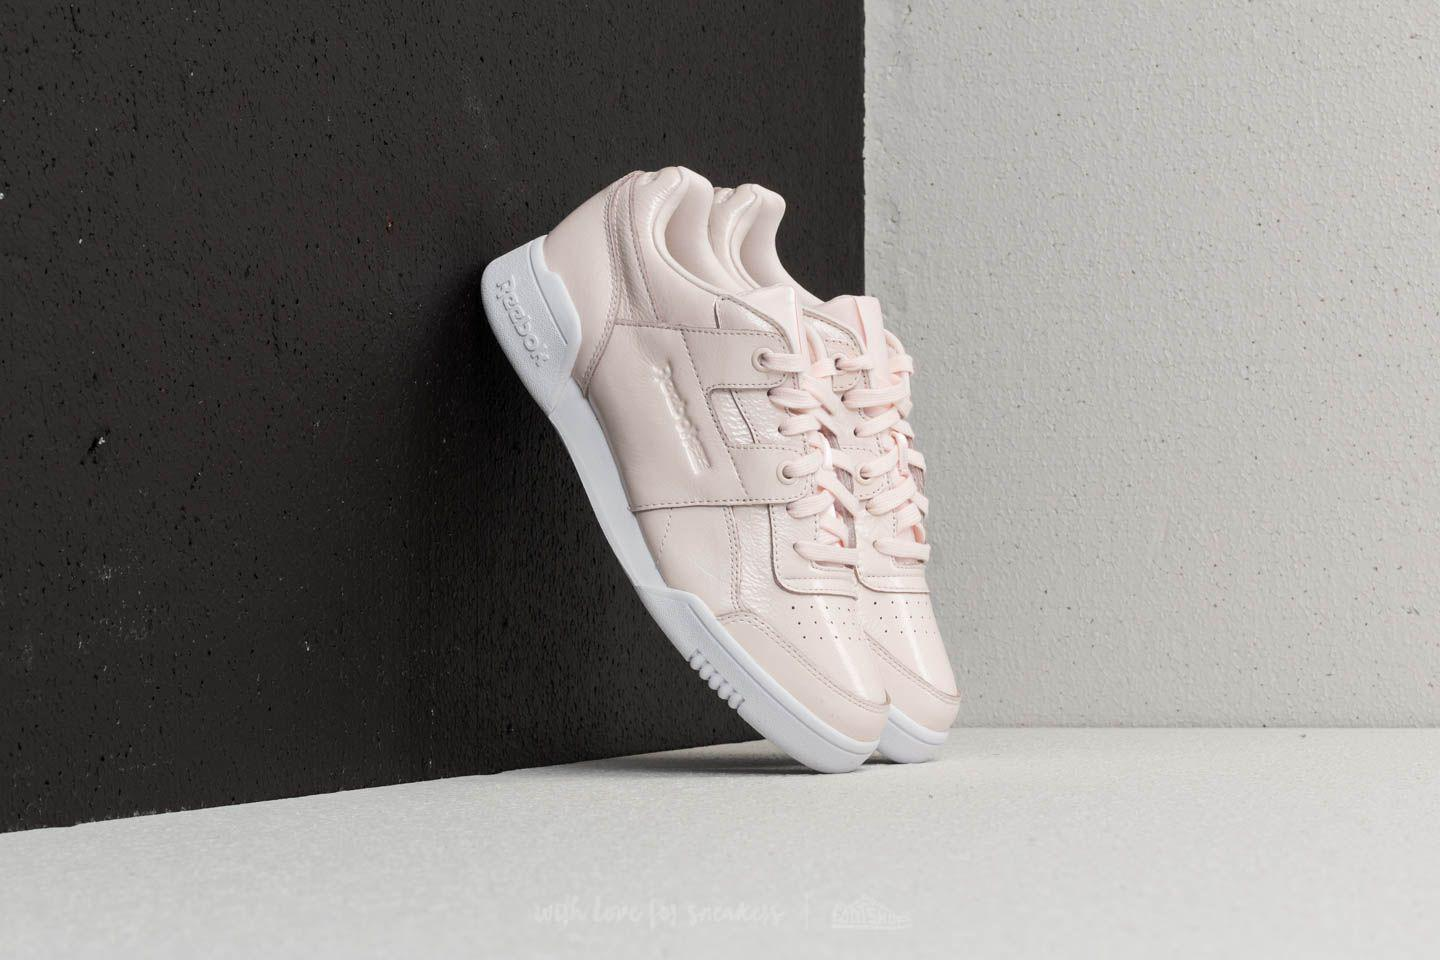 Lyst - Reebok Reebok Workout Lo Plus Iridescent Pale Pink  White in Pink 11896fa81